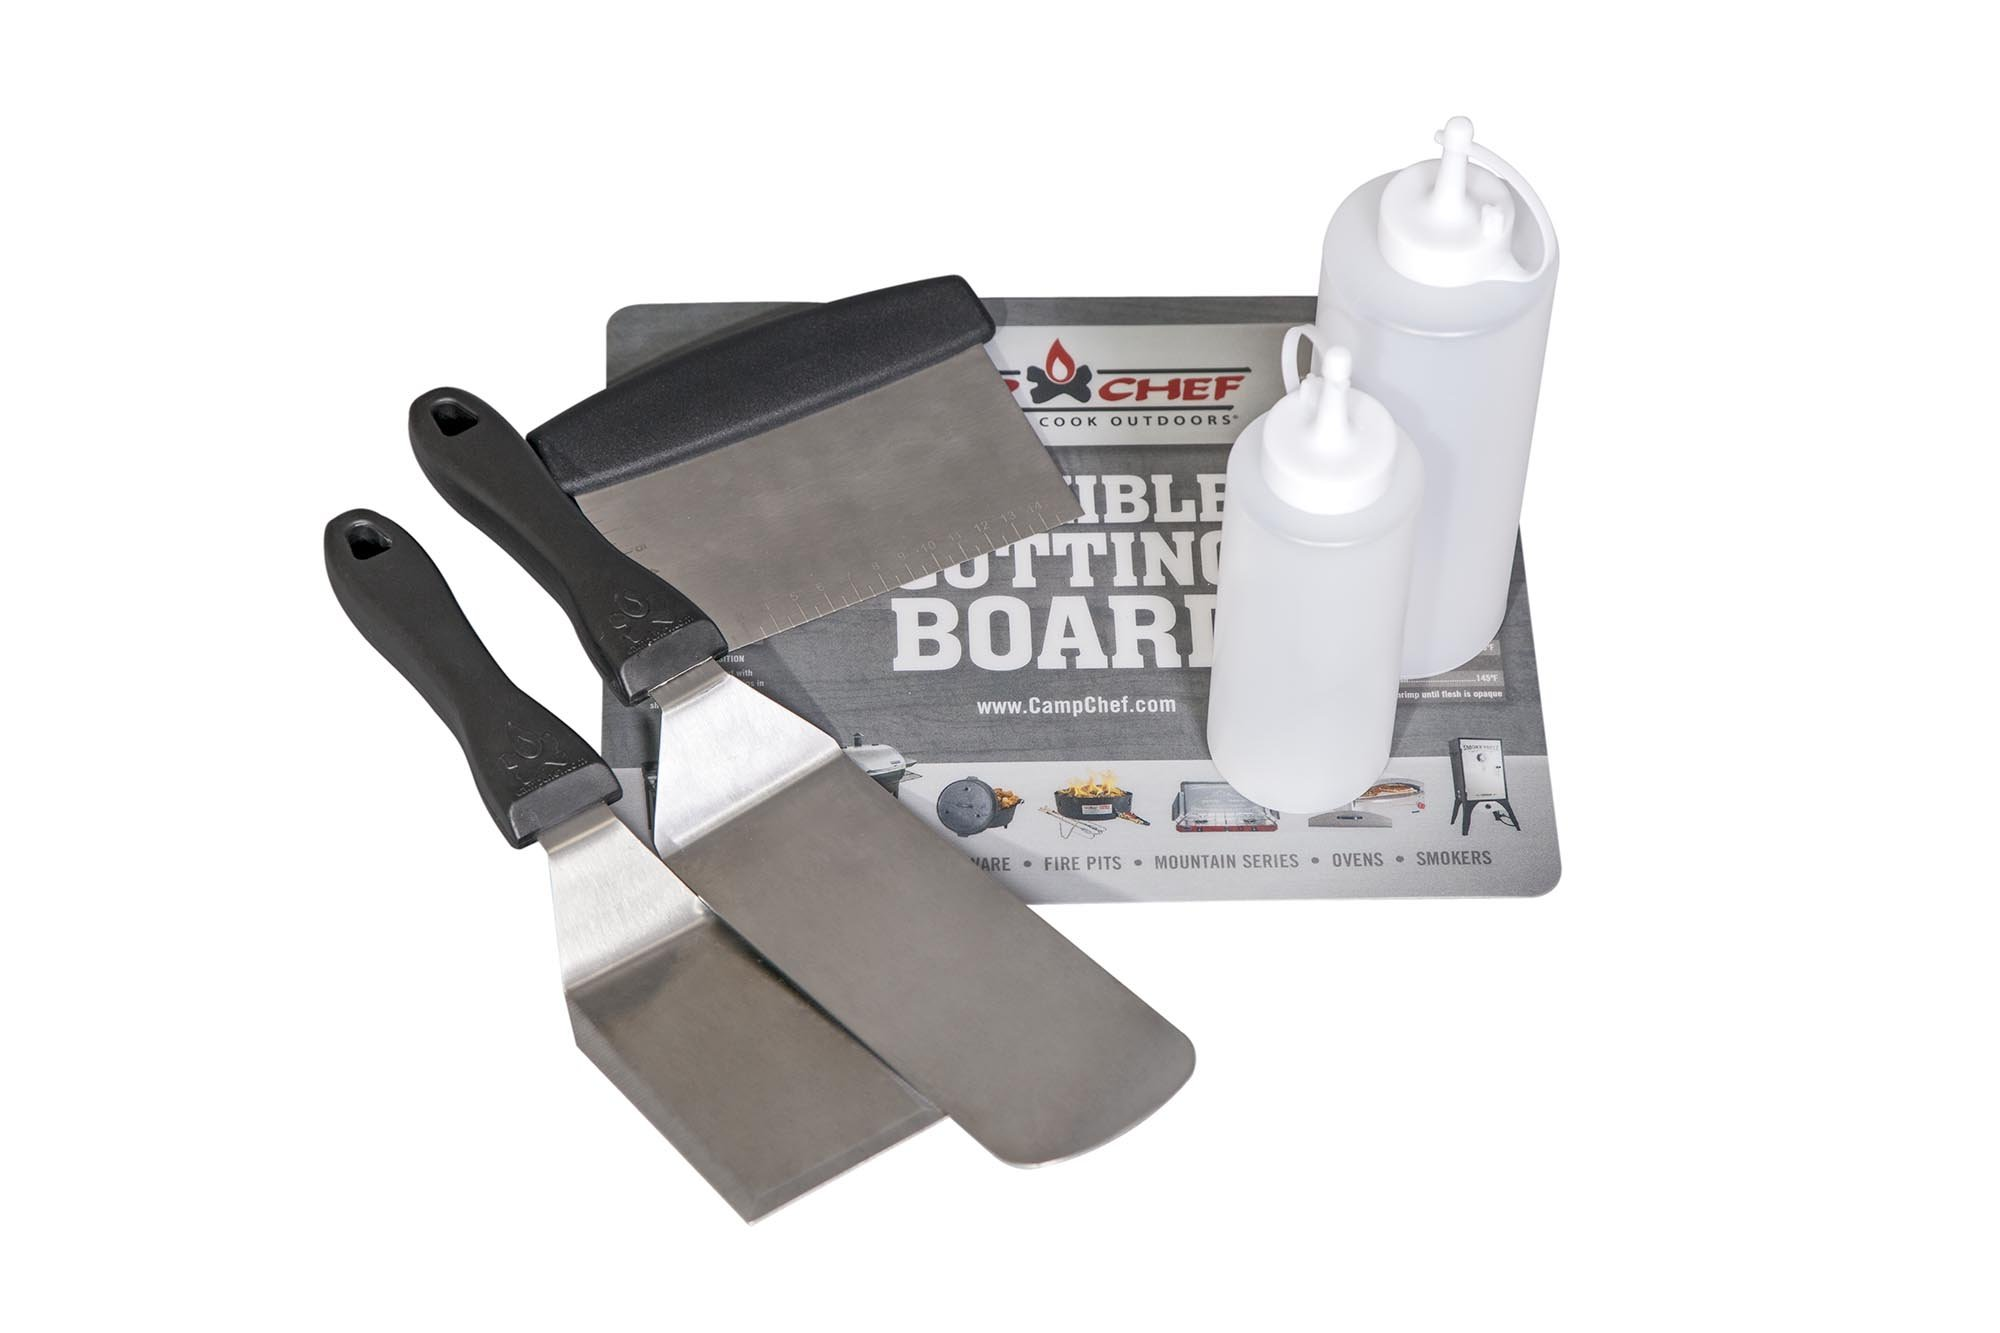 Camp Chef Flat Top Tool Kit for Flat Top Grills (FTG475, FTG600, FTG900) by Camp Chef